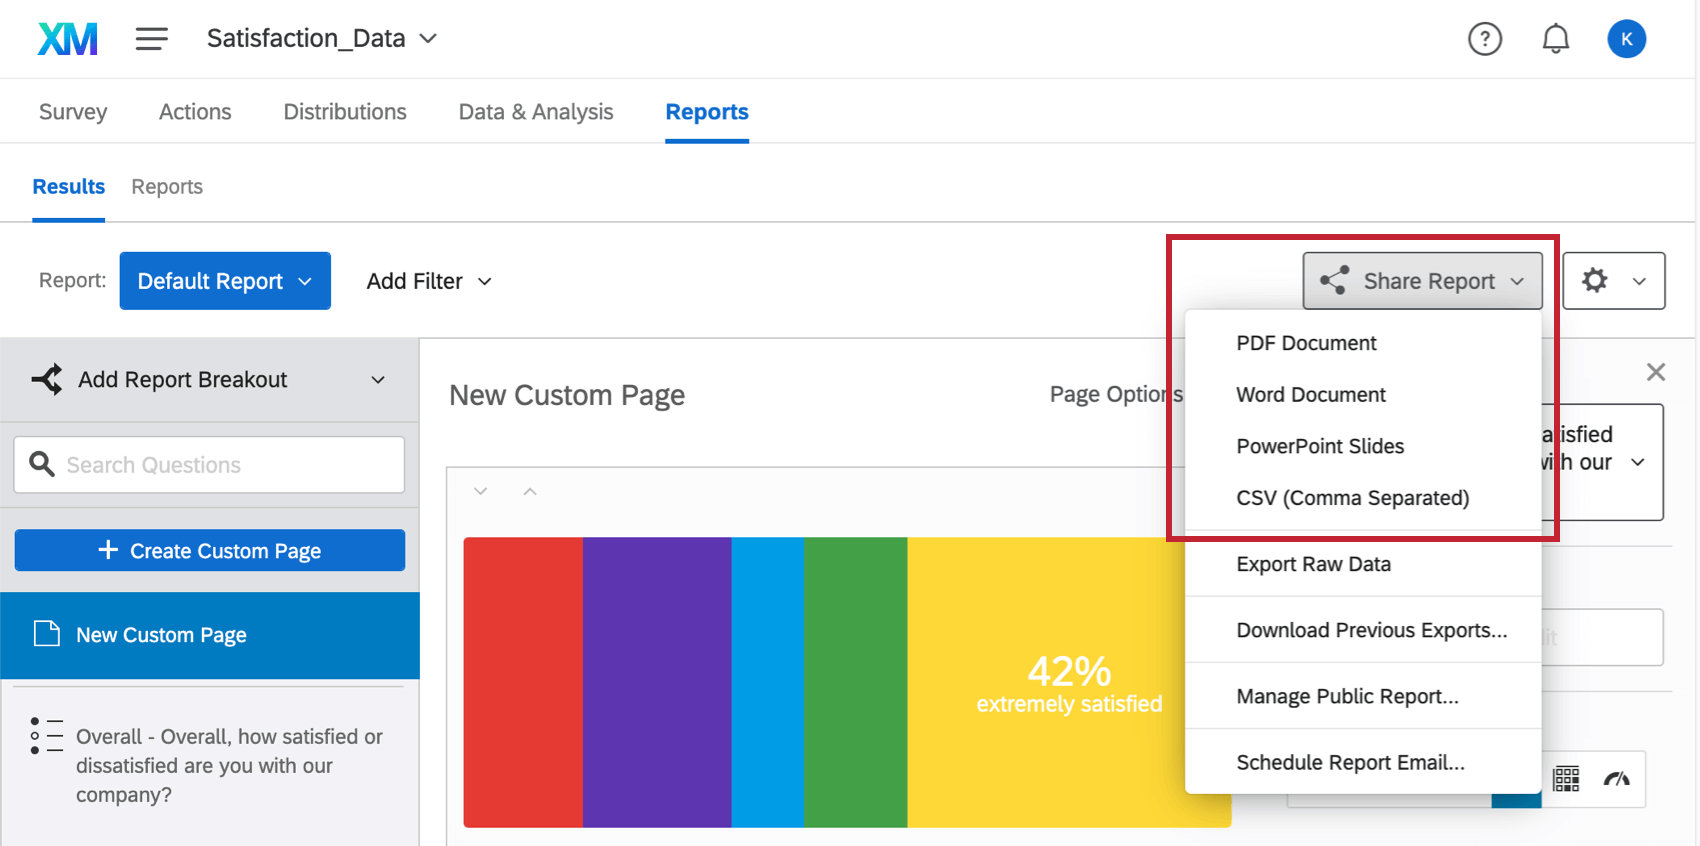 share report dropdown on the far-right